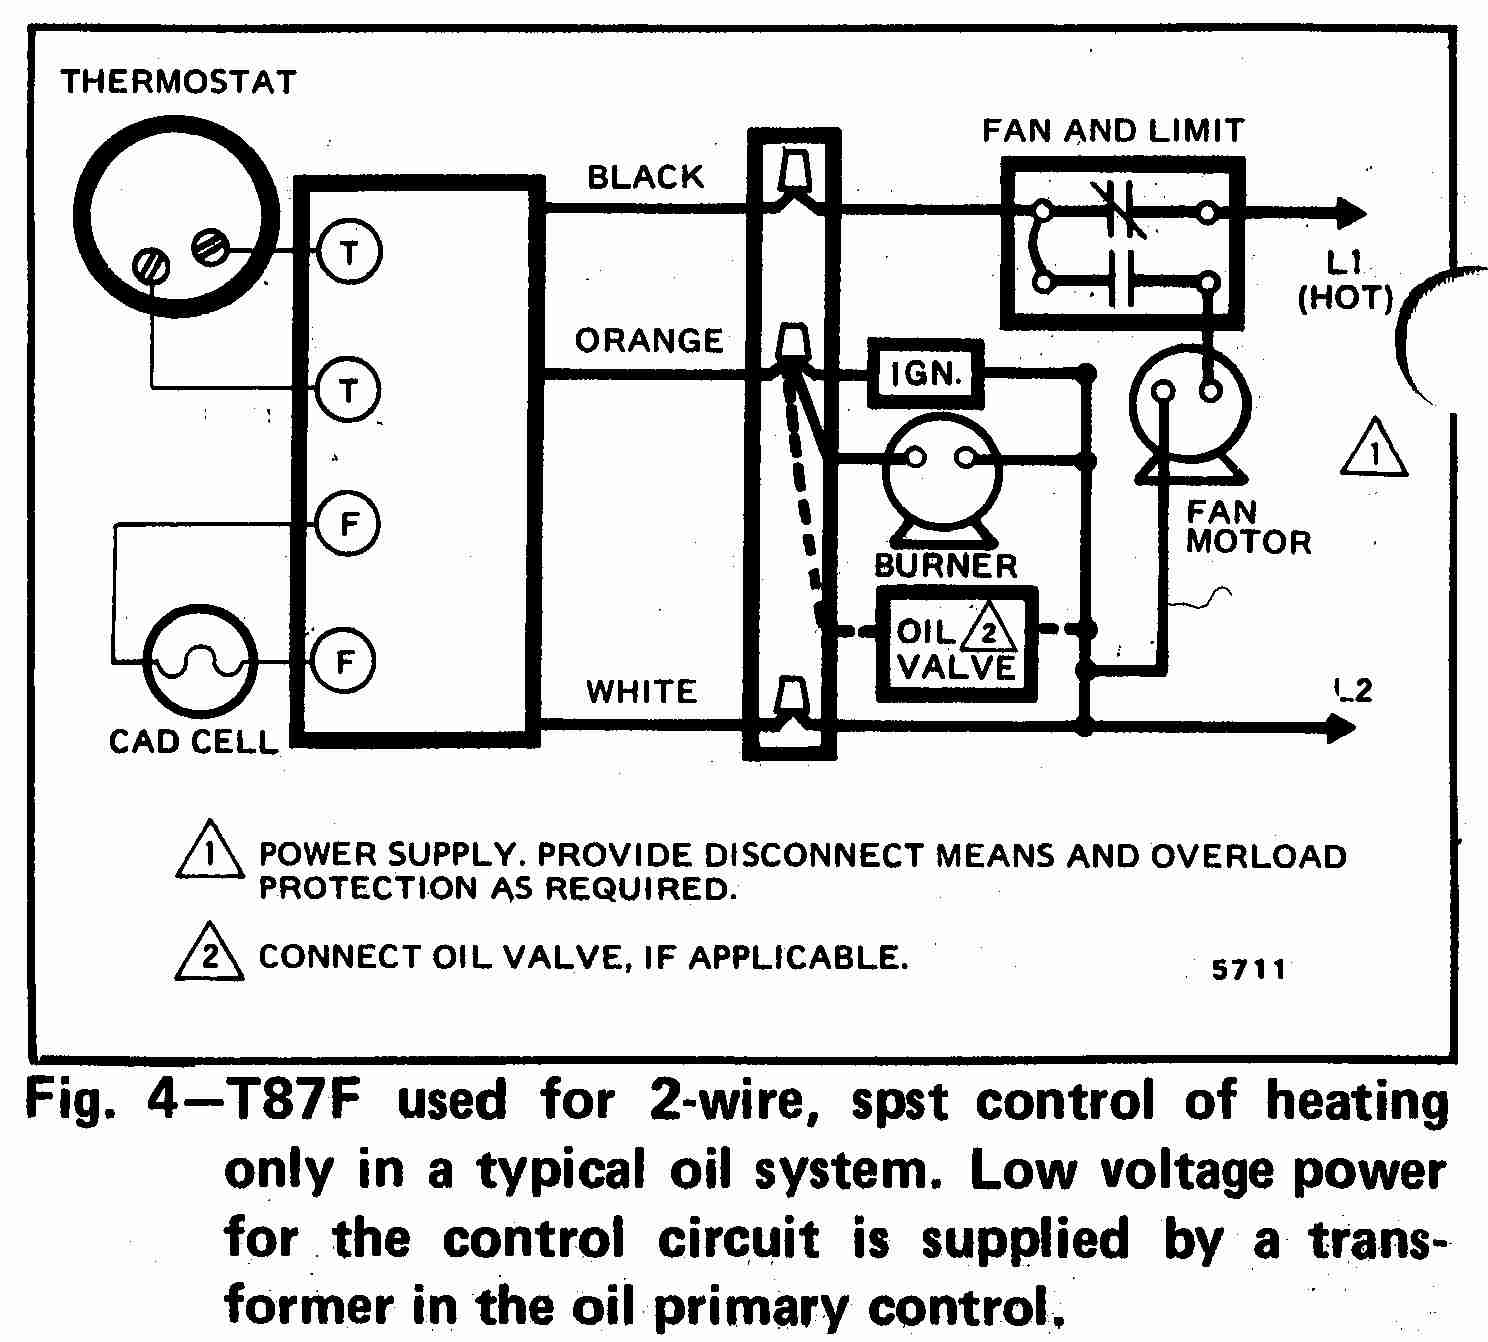 TT_T87F_0002_2W_DJF hvac control wiring diagram hvac compressor wiring diagram \u2022 free honeywell pressure switch wiring diagram at reclaimingppi.co